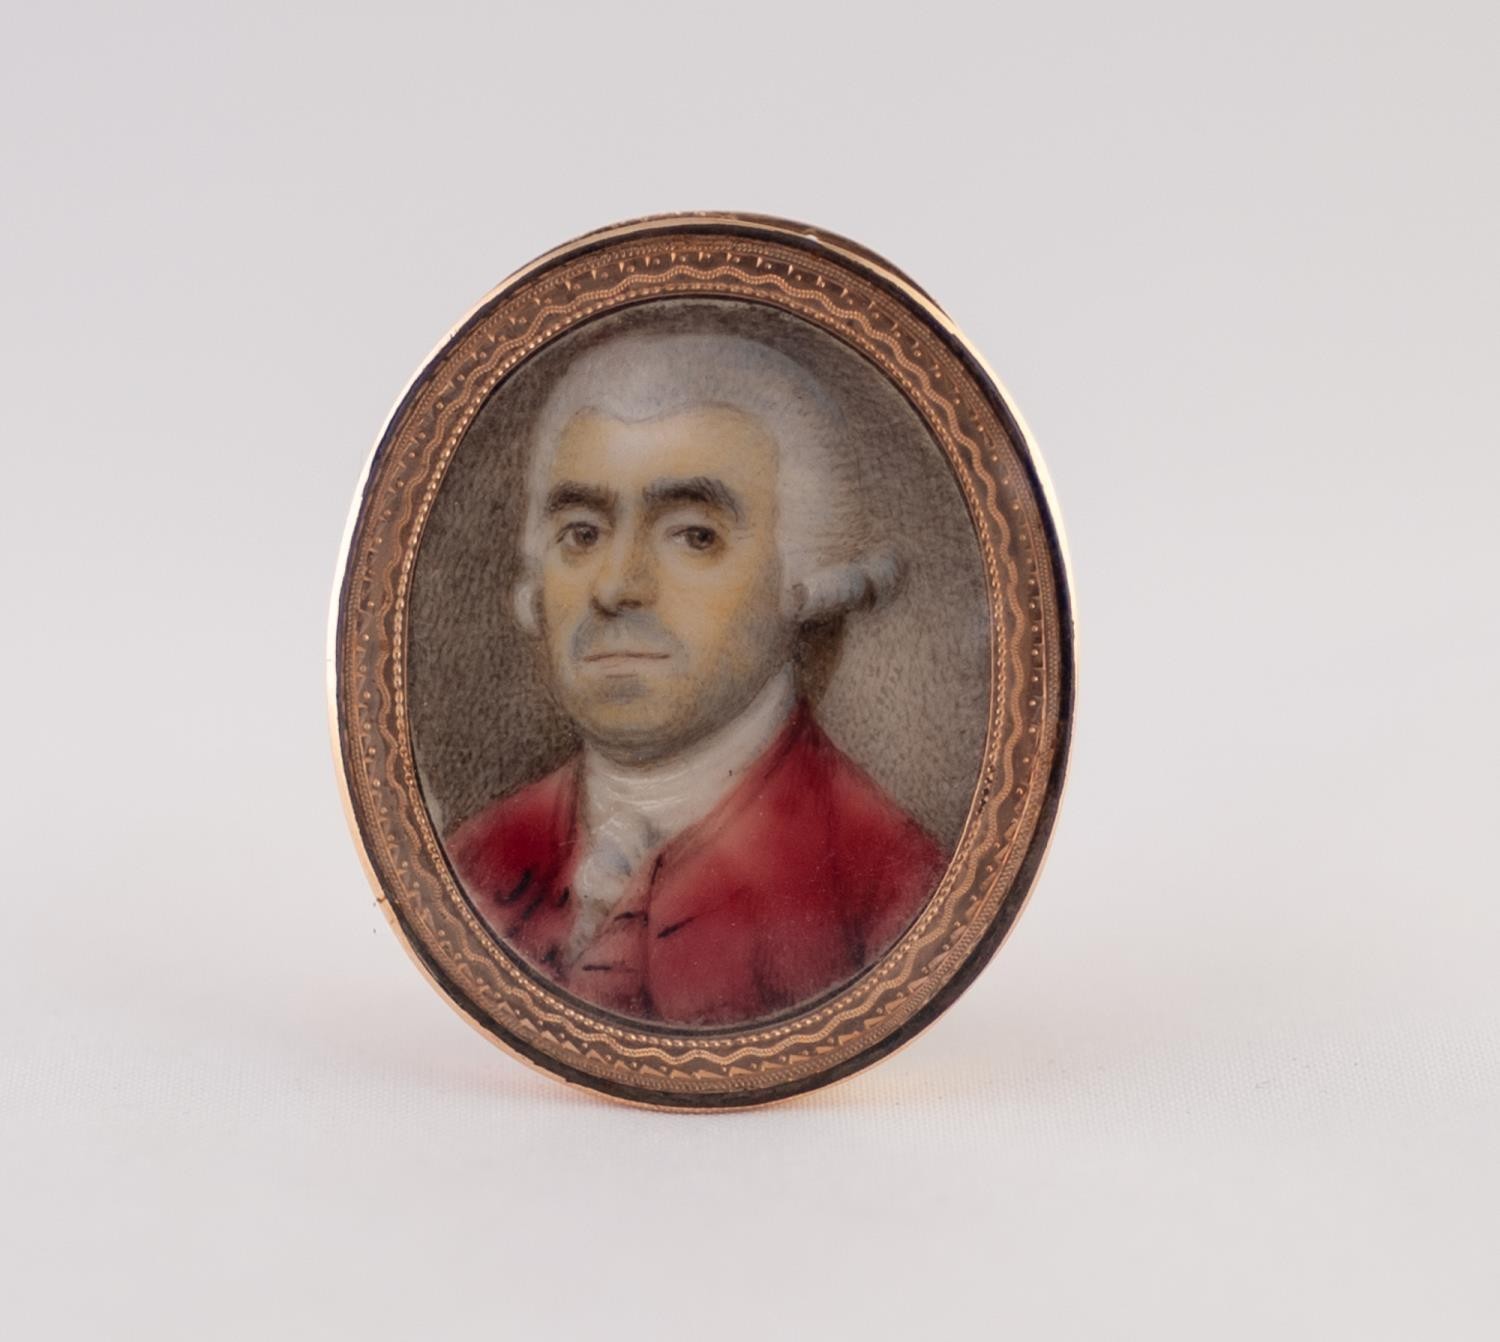 Lot 922 - BRITISH SCHOOL (LATE 18TH CENTURY), A GOOD OVAL PORTRAIT MINIATURE ON IVORY OF A GENTLEMAN WEARING A